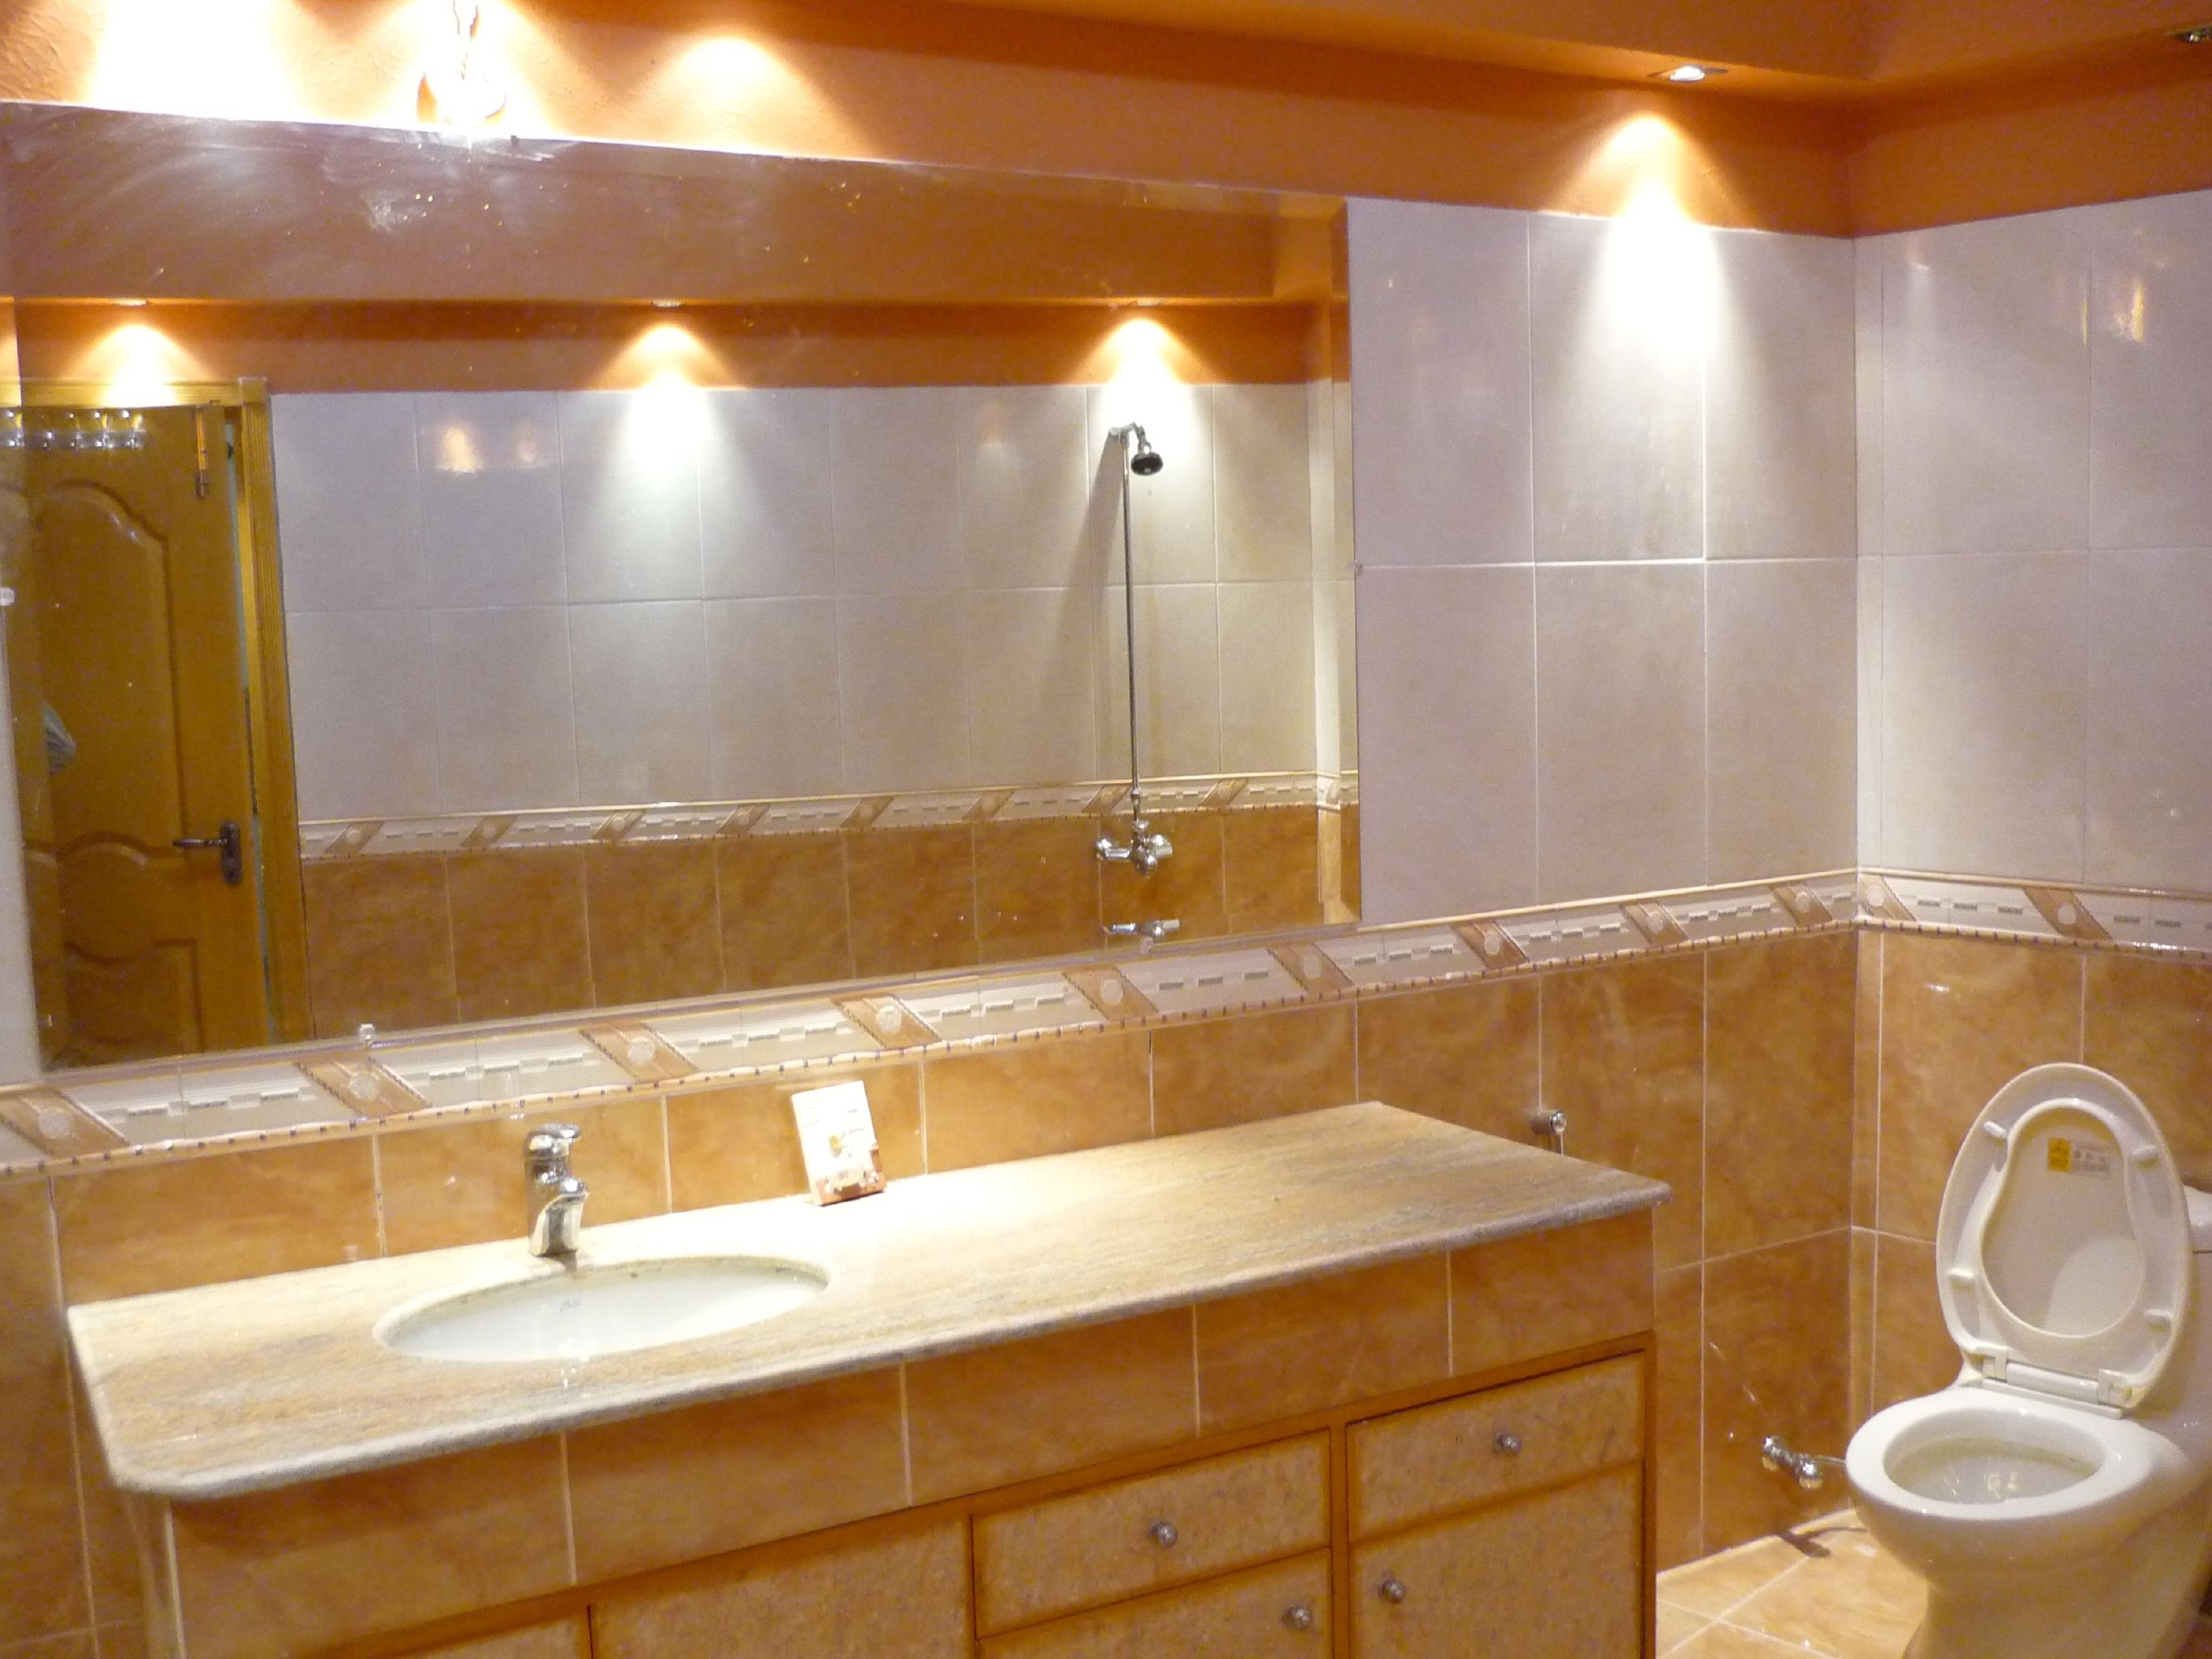 Awesome Ative Bathroom Wall Mirrors Crest - Home Design Ideas and ...